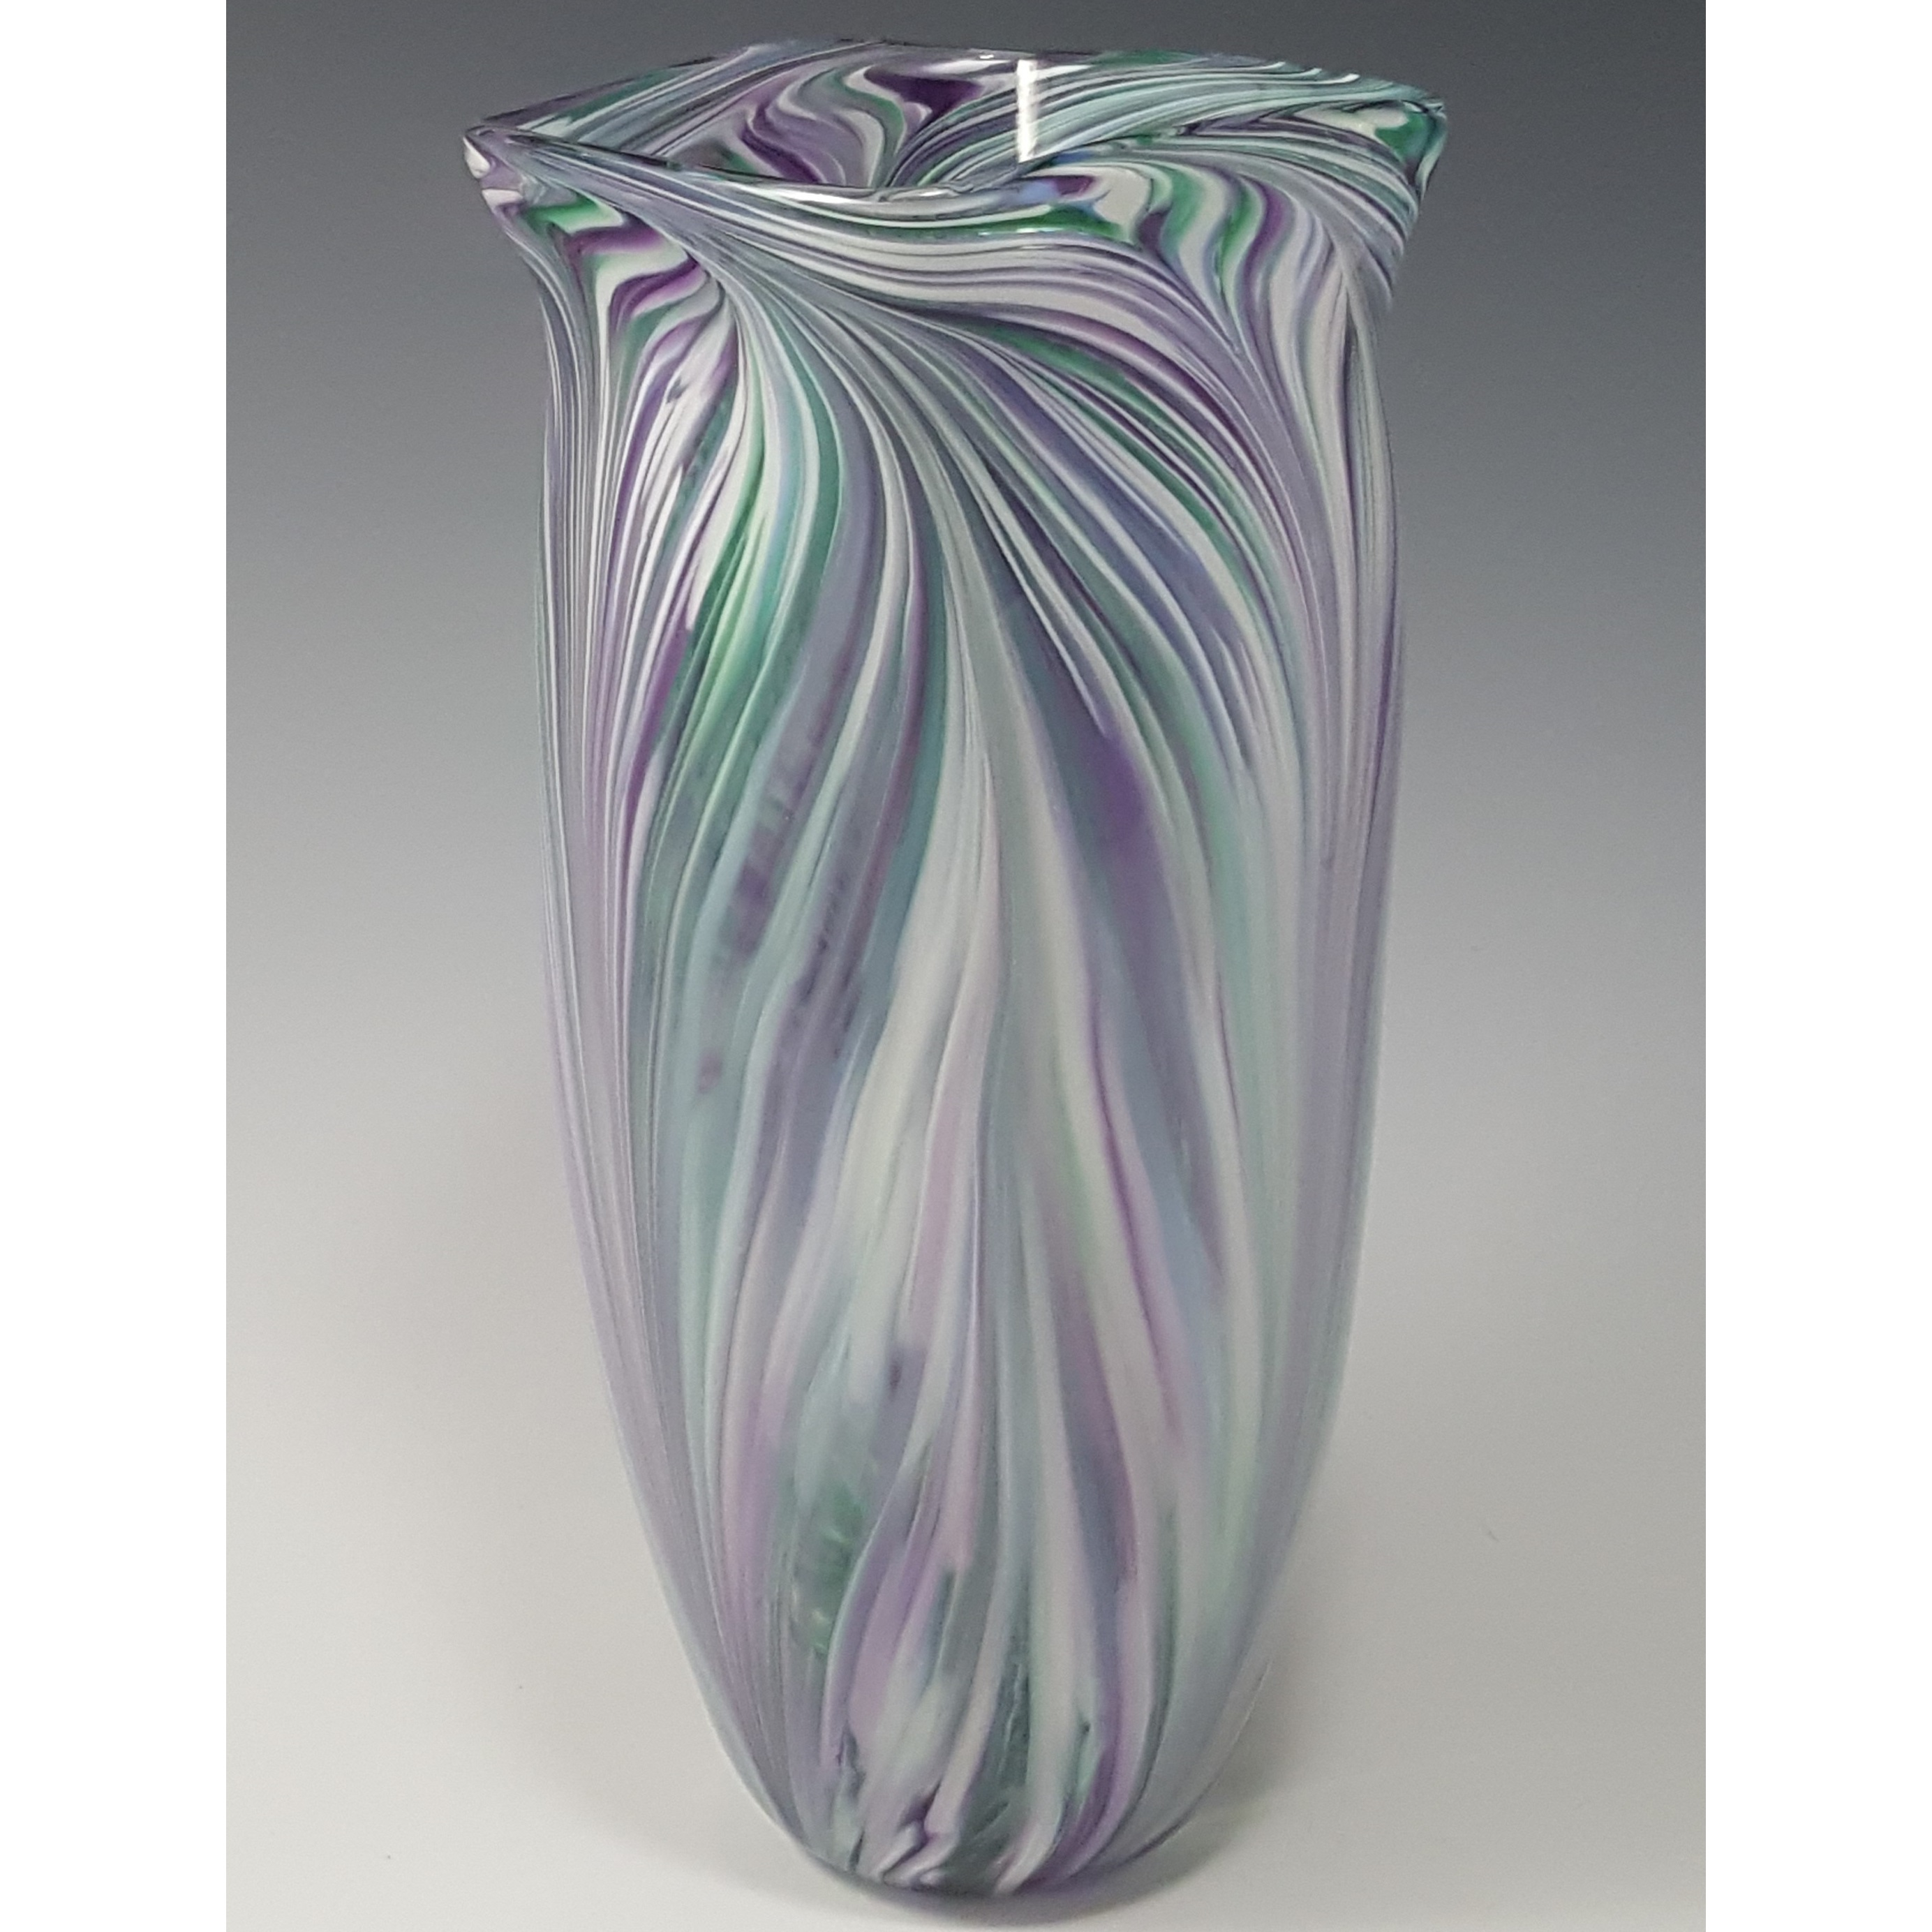 Peacock Vase in Cool Mix